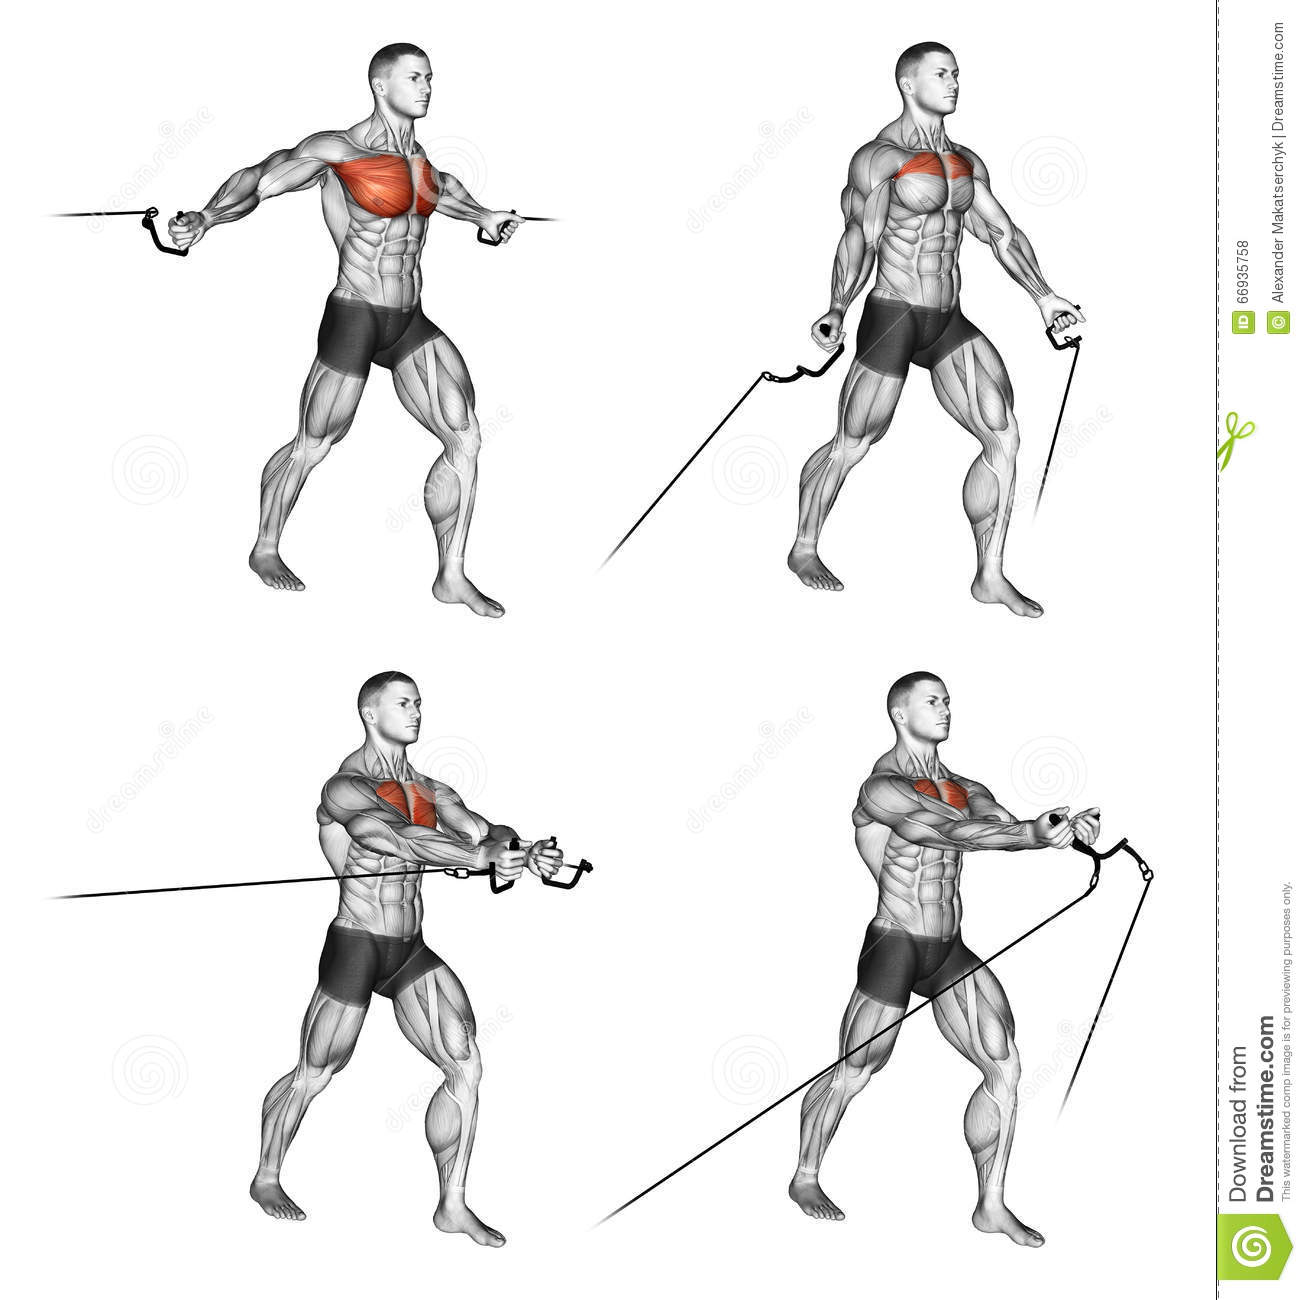 Exercising. Middle and Low cable fly